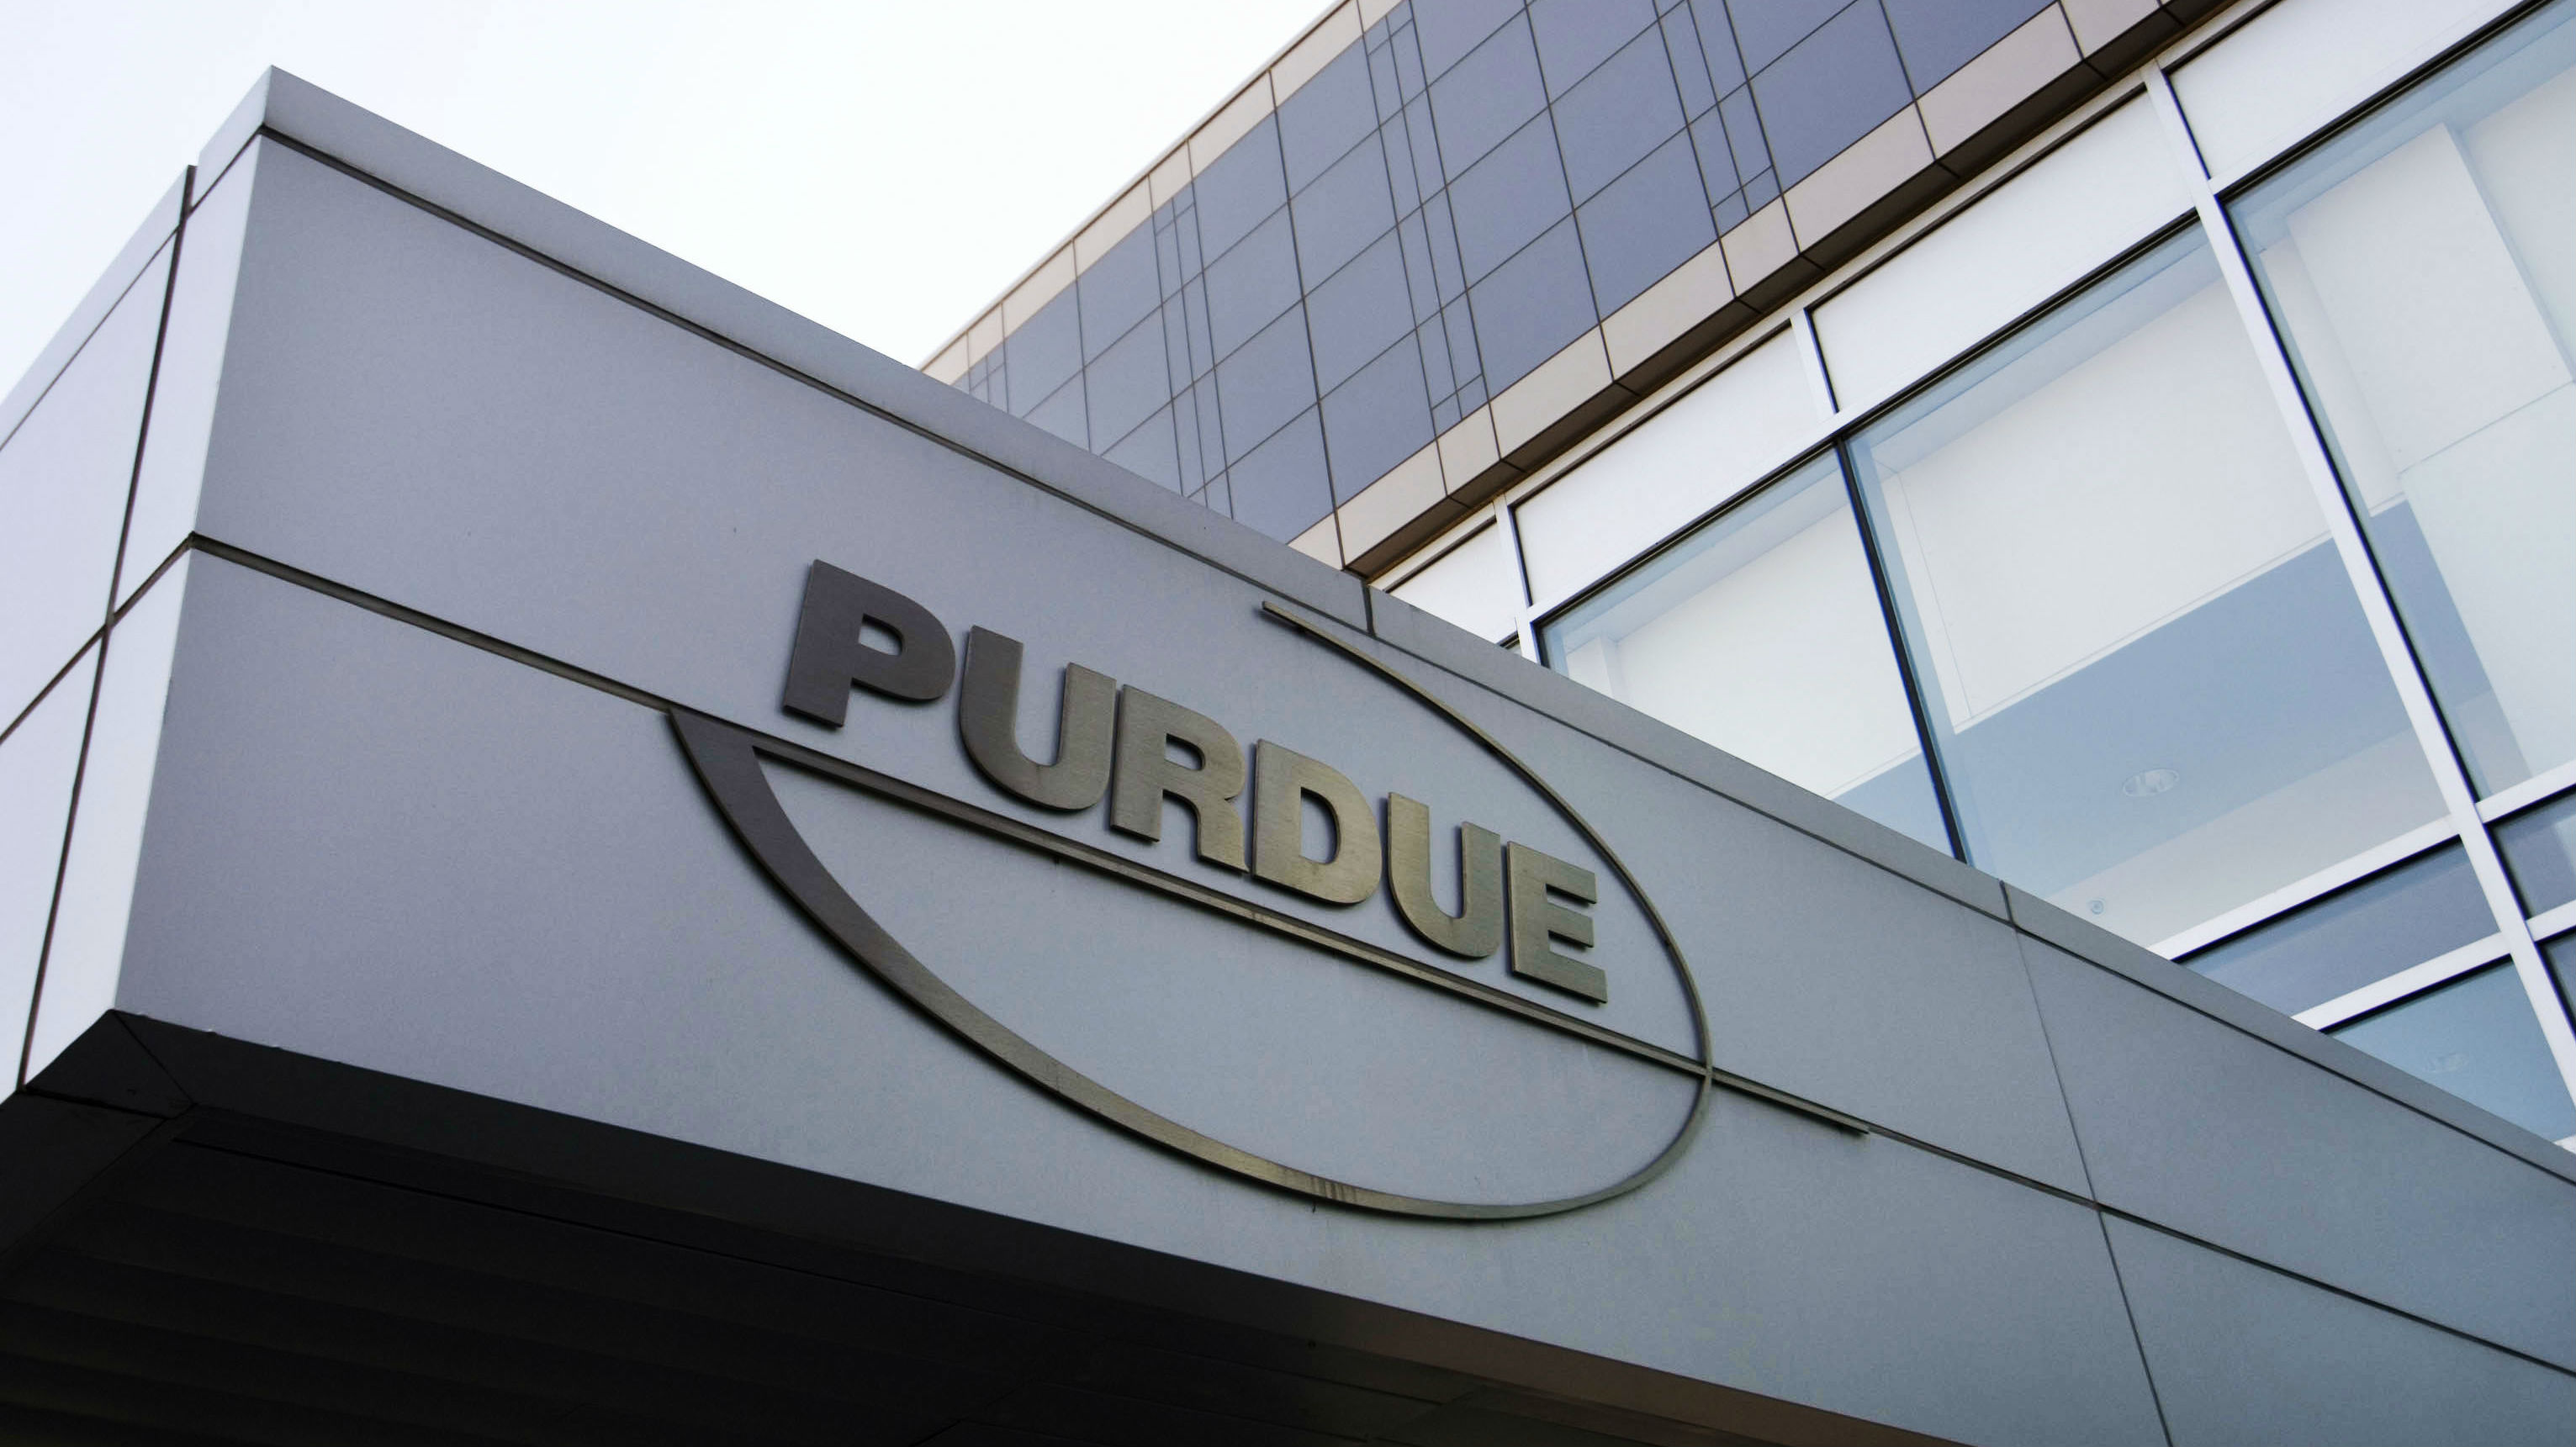 The building front of Purdue Pharmaceutical Industries